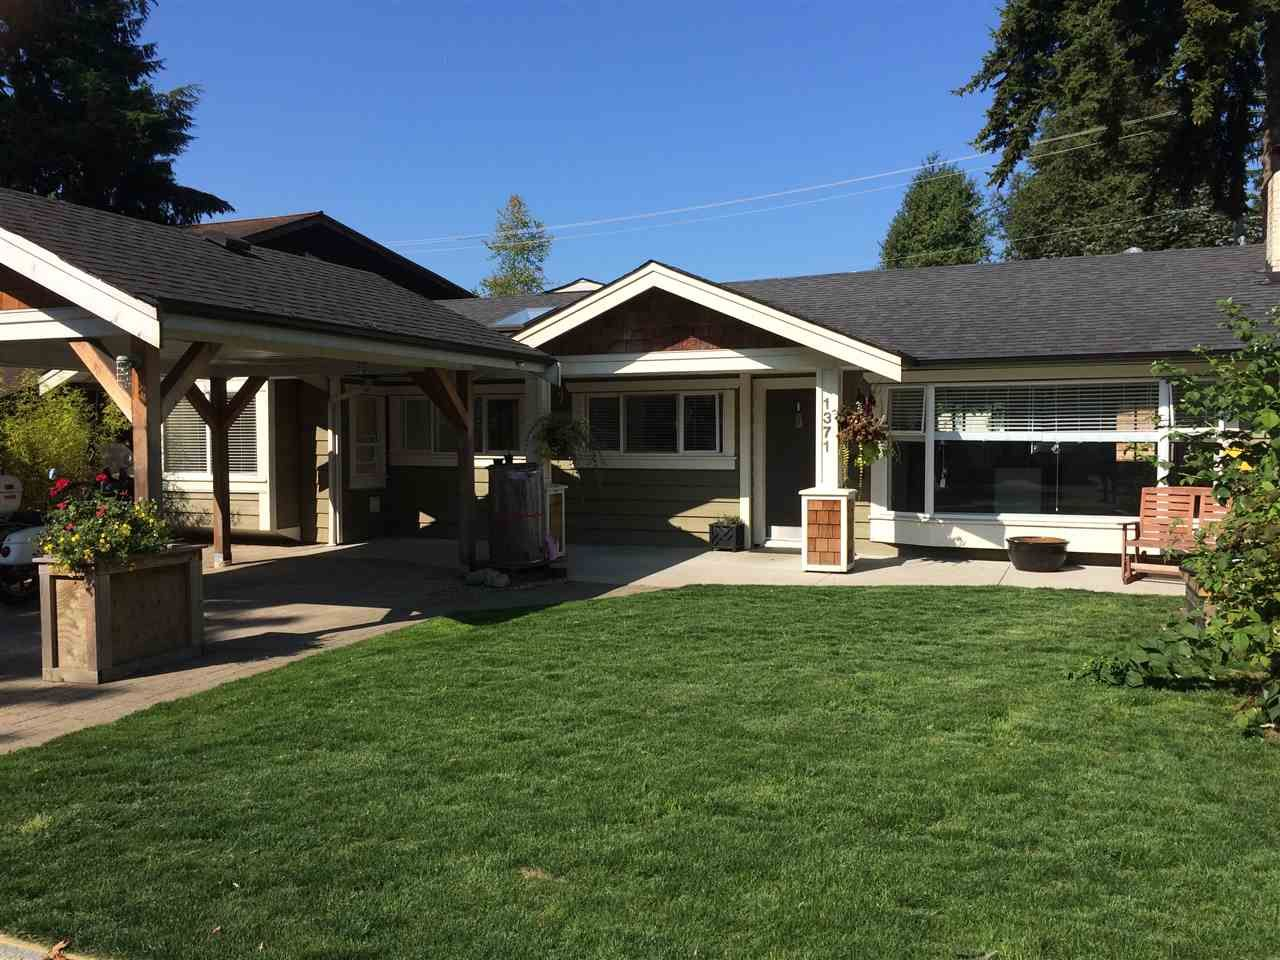 """Main Photo: 1371 OAKWOOD Crescent in North Vancouver: Norgate House for sale in """"Norgate"""" : MLS®# R2097548"""